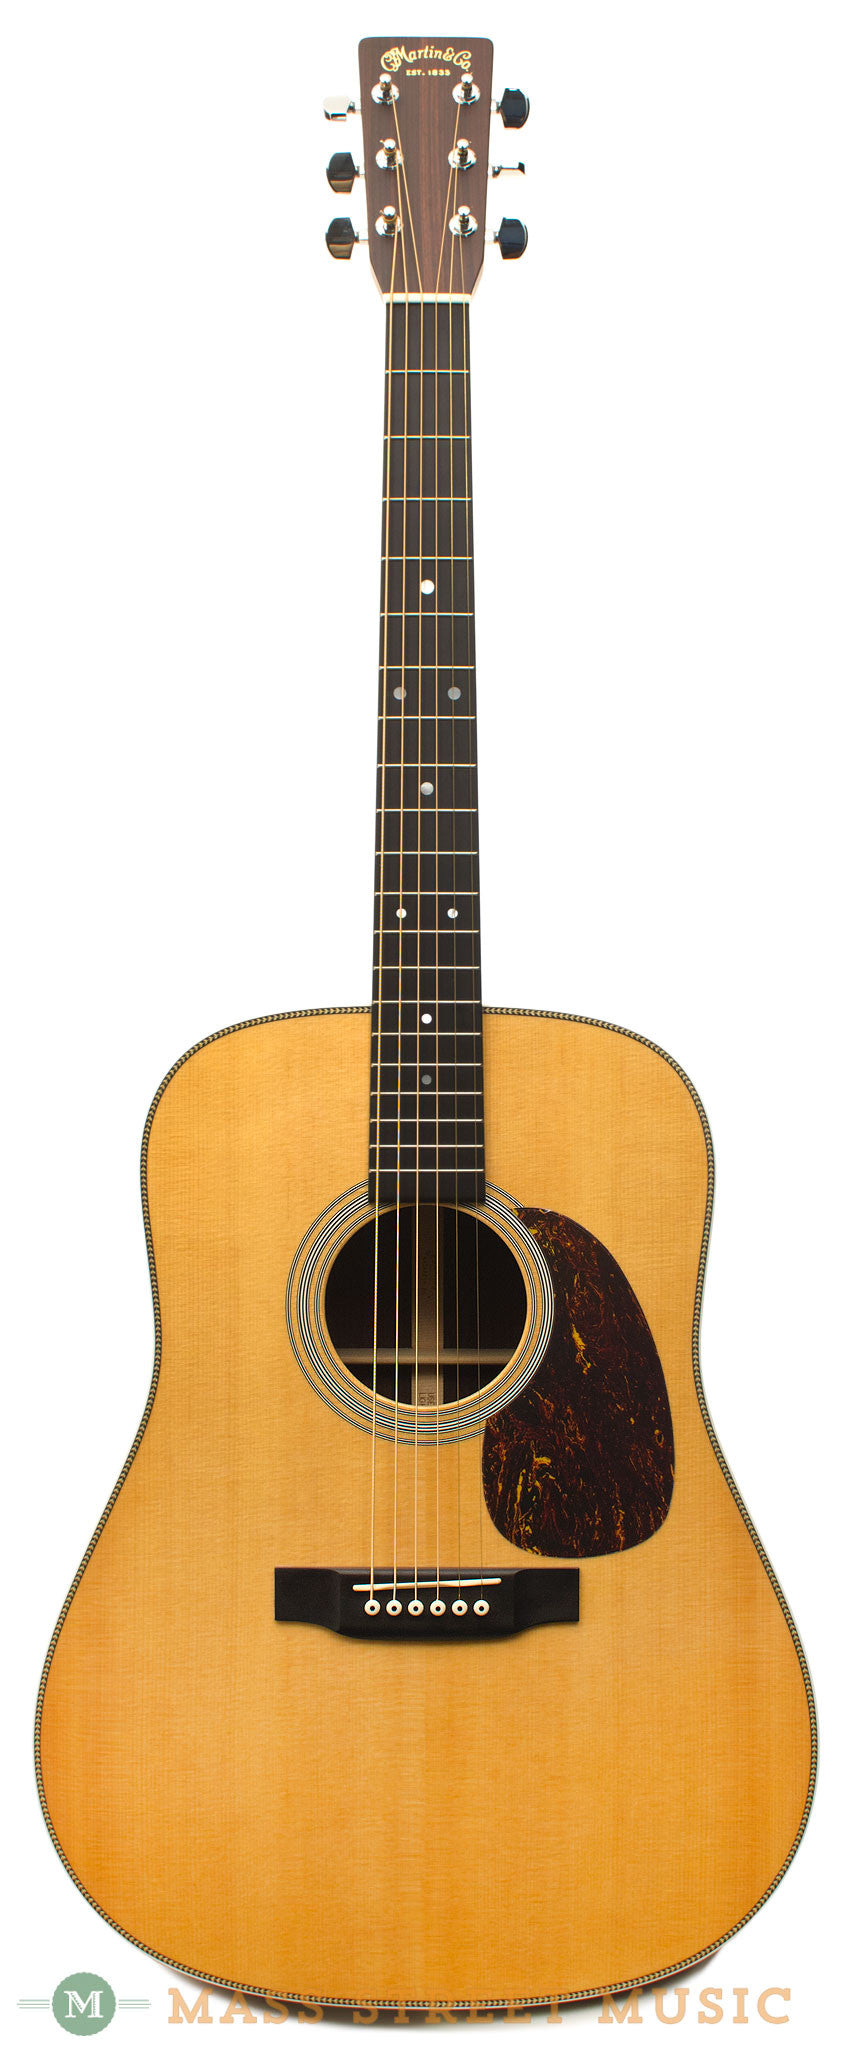 martin hd 28 2001 used acoustic guitar with original hardshell case mass street music store. Black Bedroom Furniture Sets. Home Design Ideas